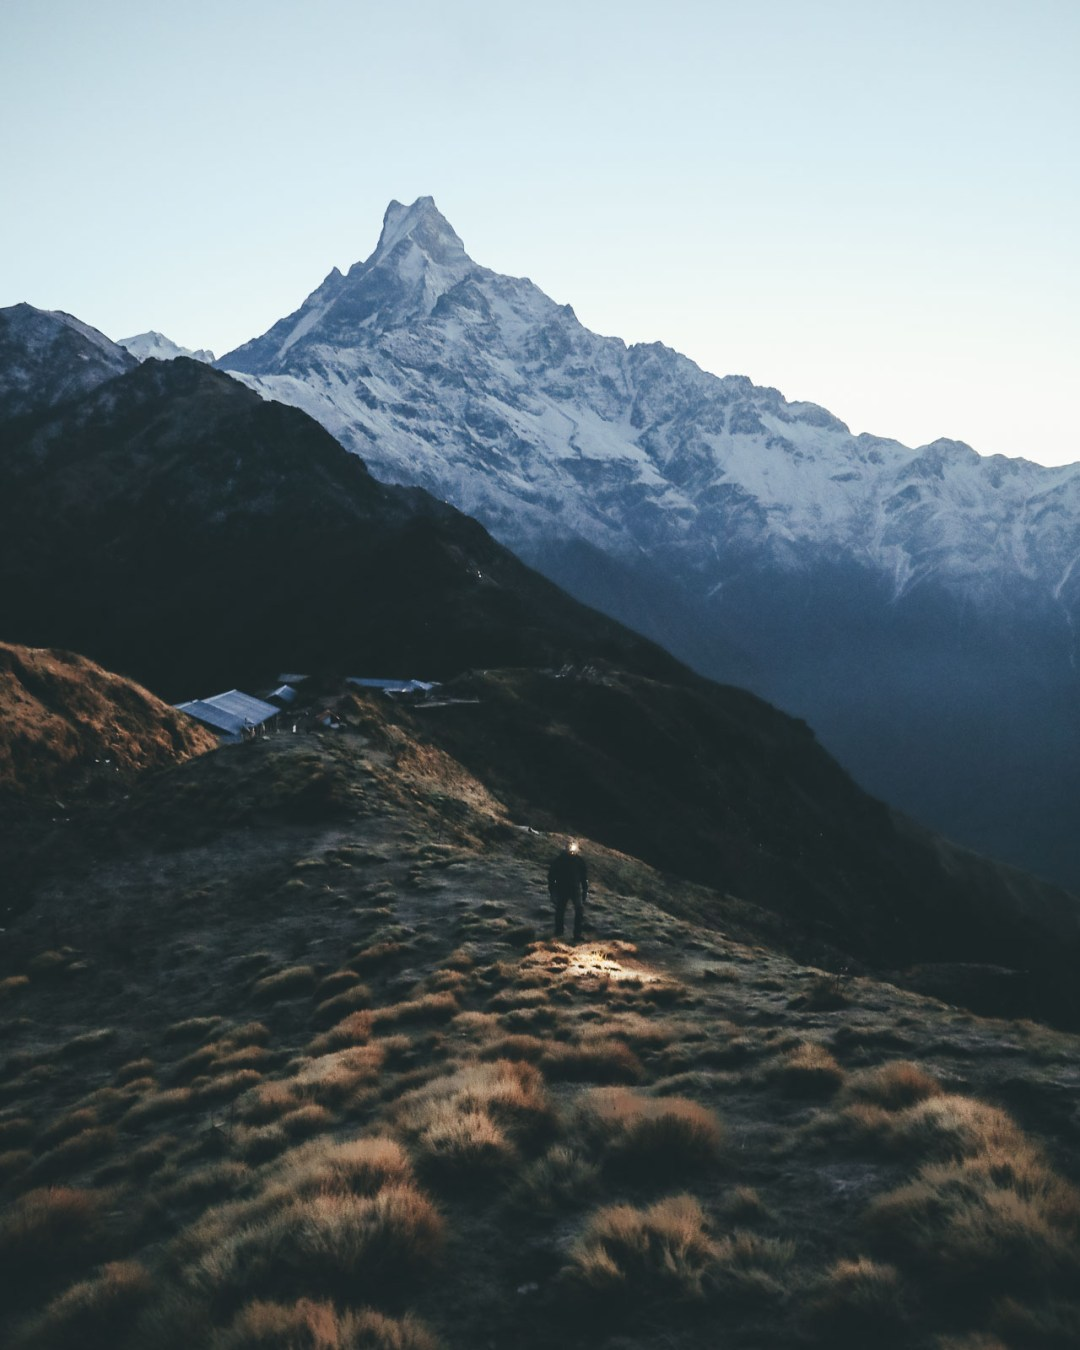 Taking Deeper Breaths: Hiking The Himalayas